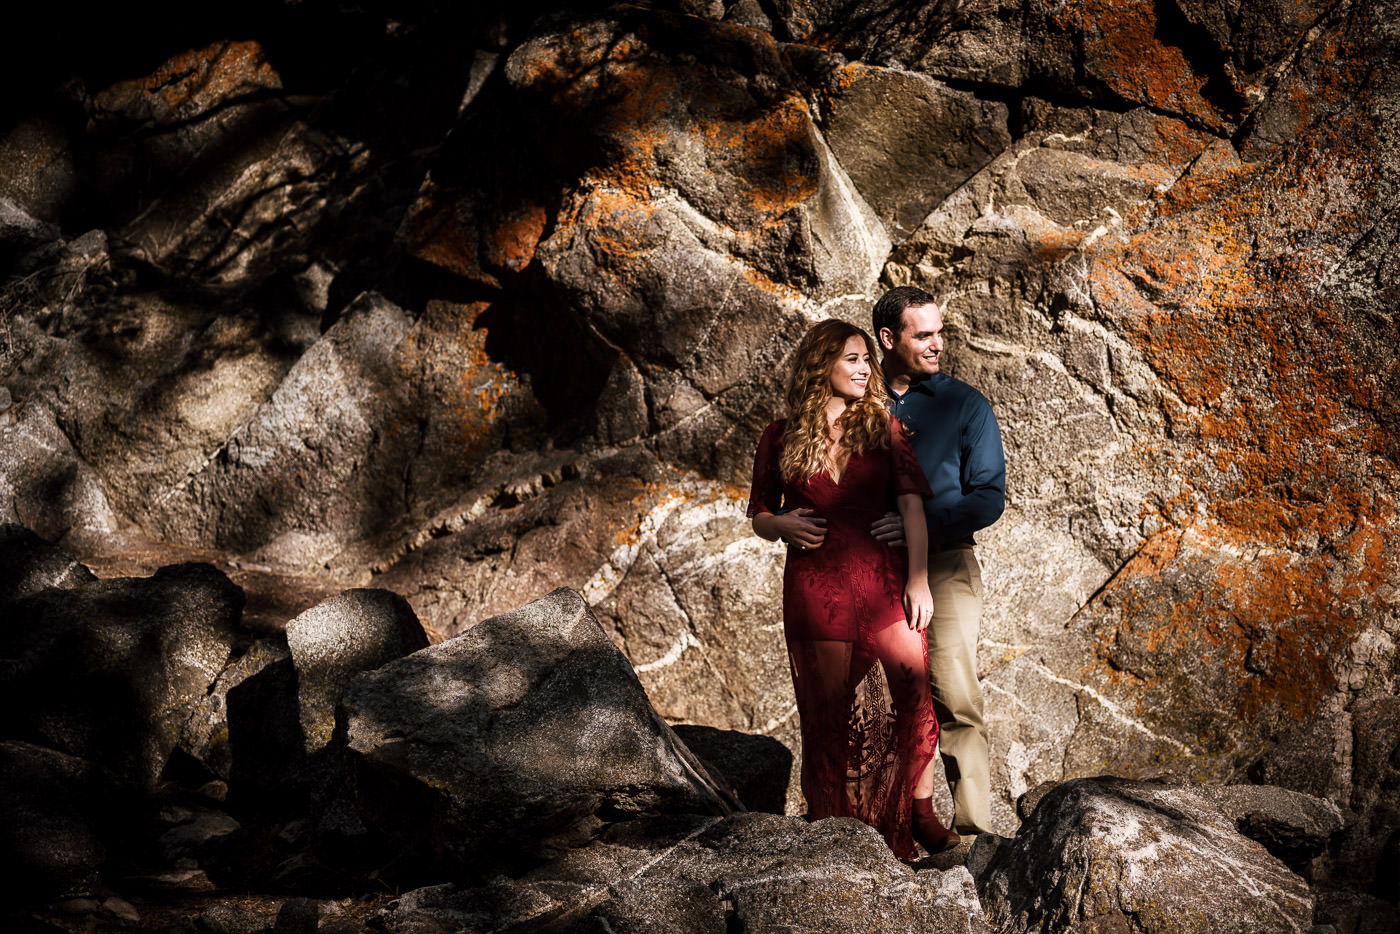 Stoic couple poses for stunning engagement photograph.